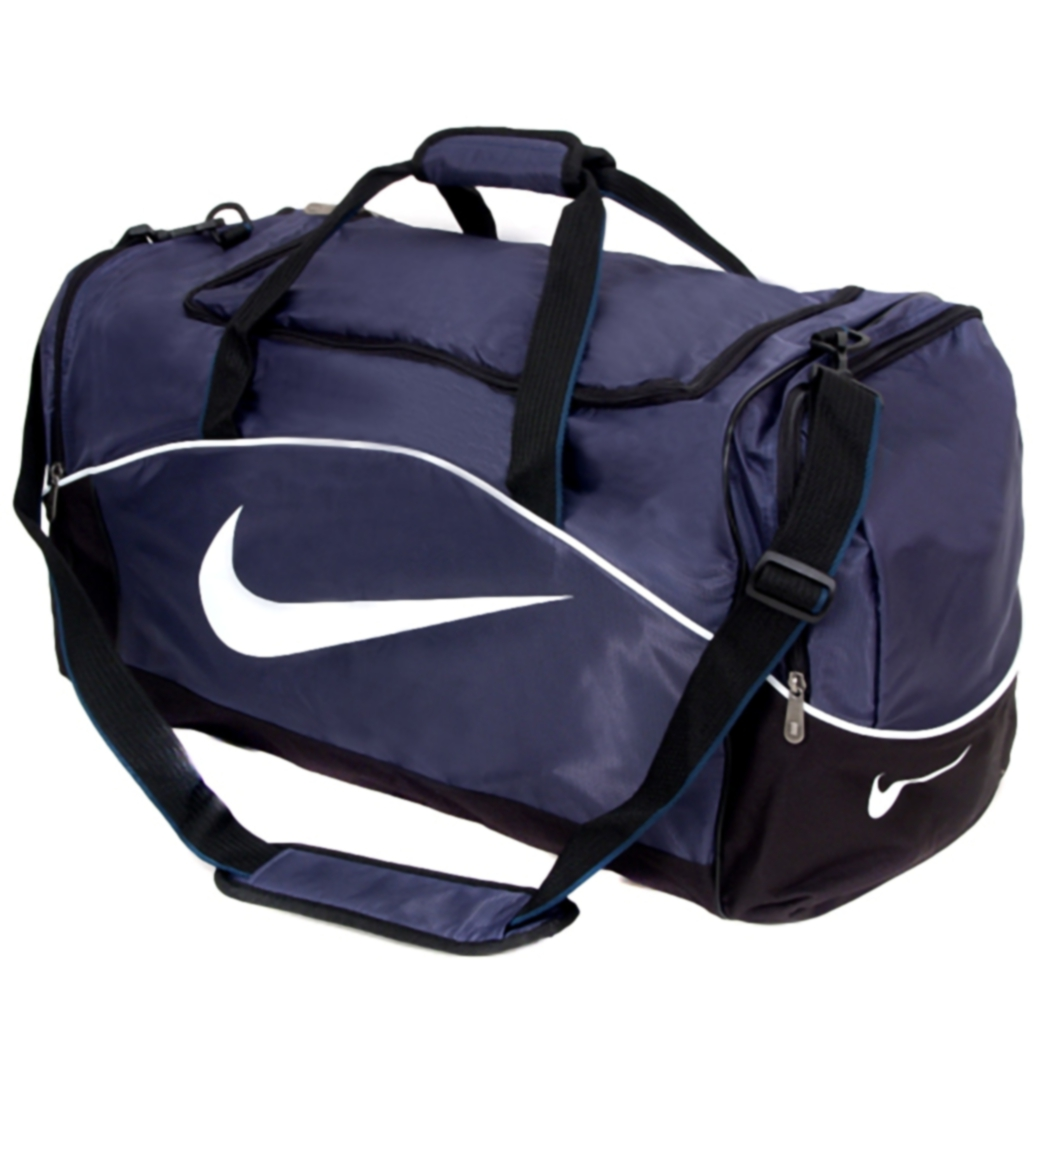 00dc1e62eacd Share. Share on Facebook · Tweet on Twitter · Pin on Pinterest. Visit  Product Page close X. Nike Swim Brasilia Duffle Bag